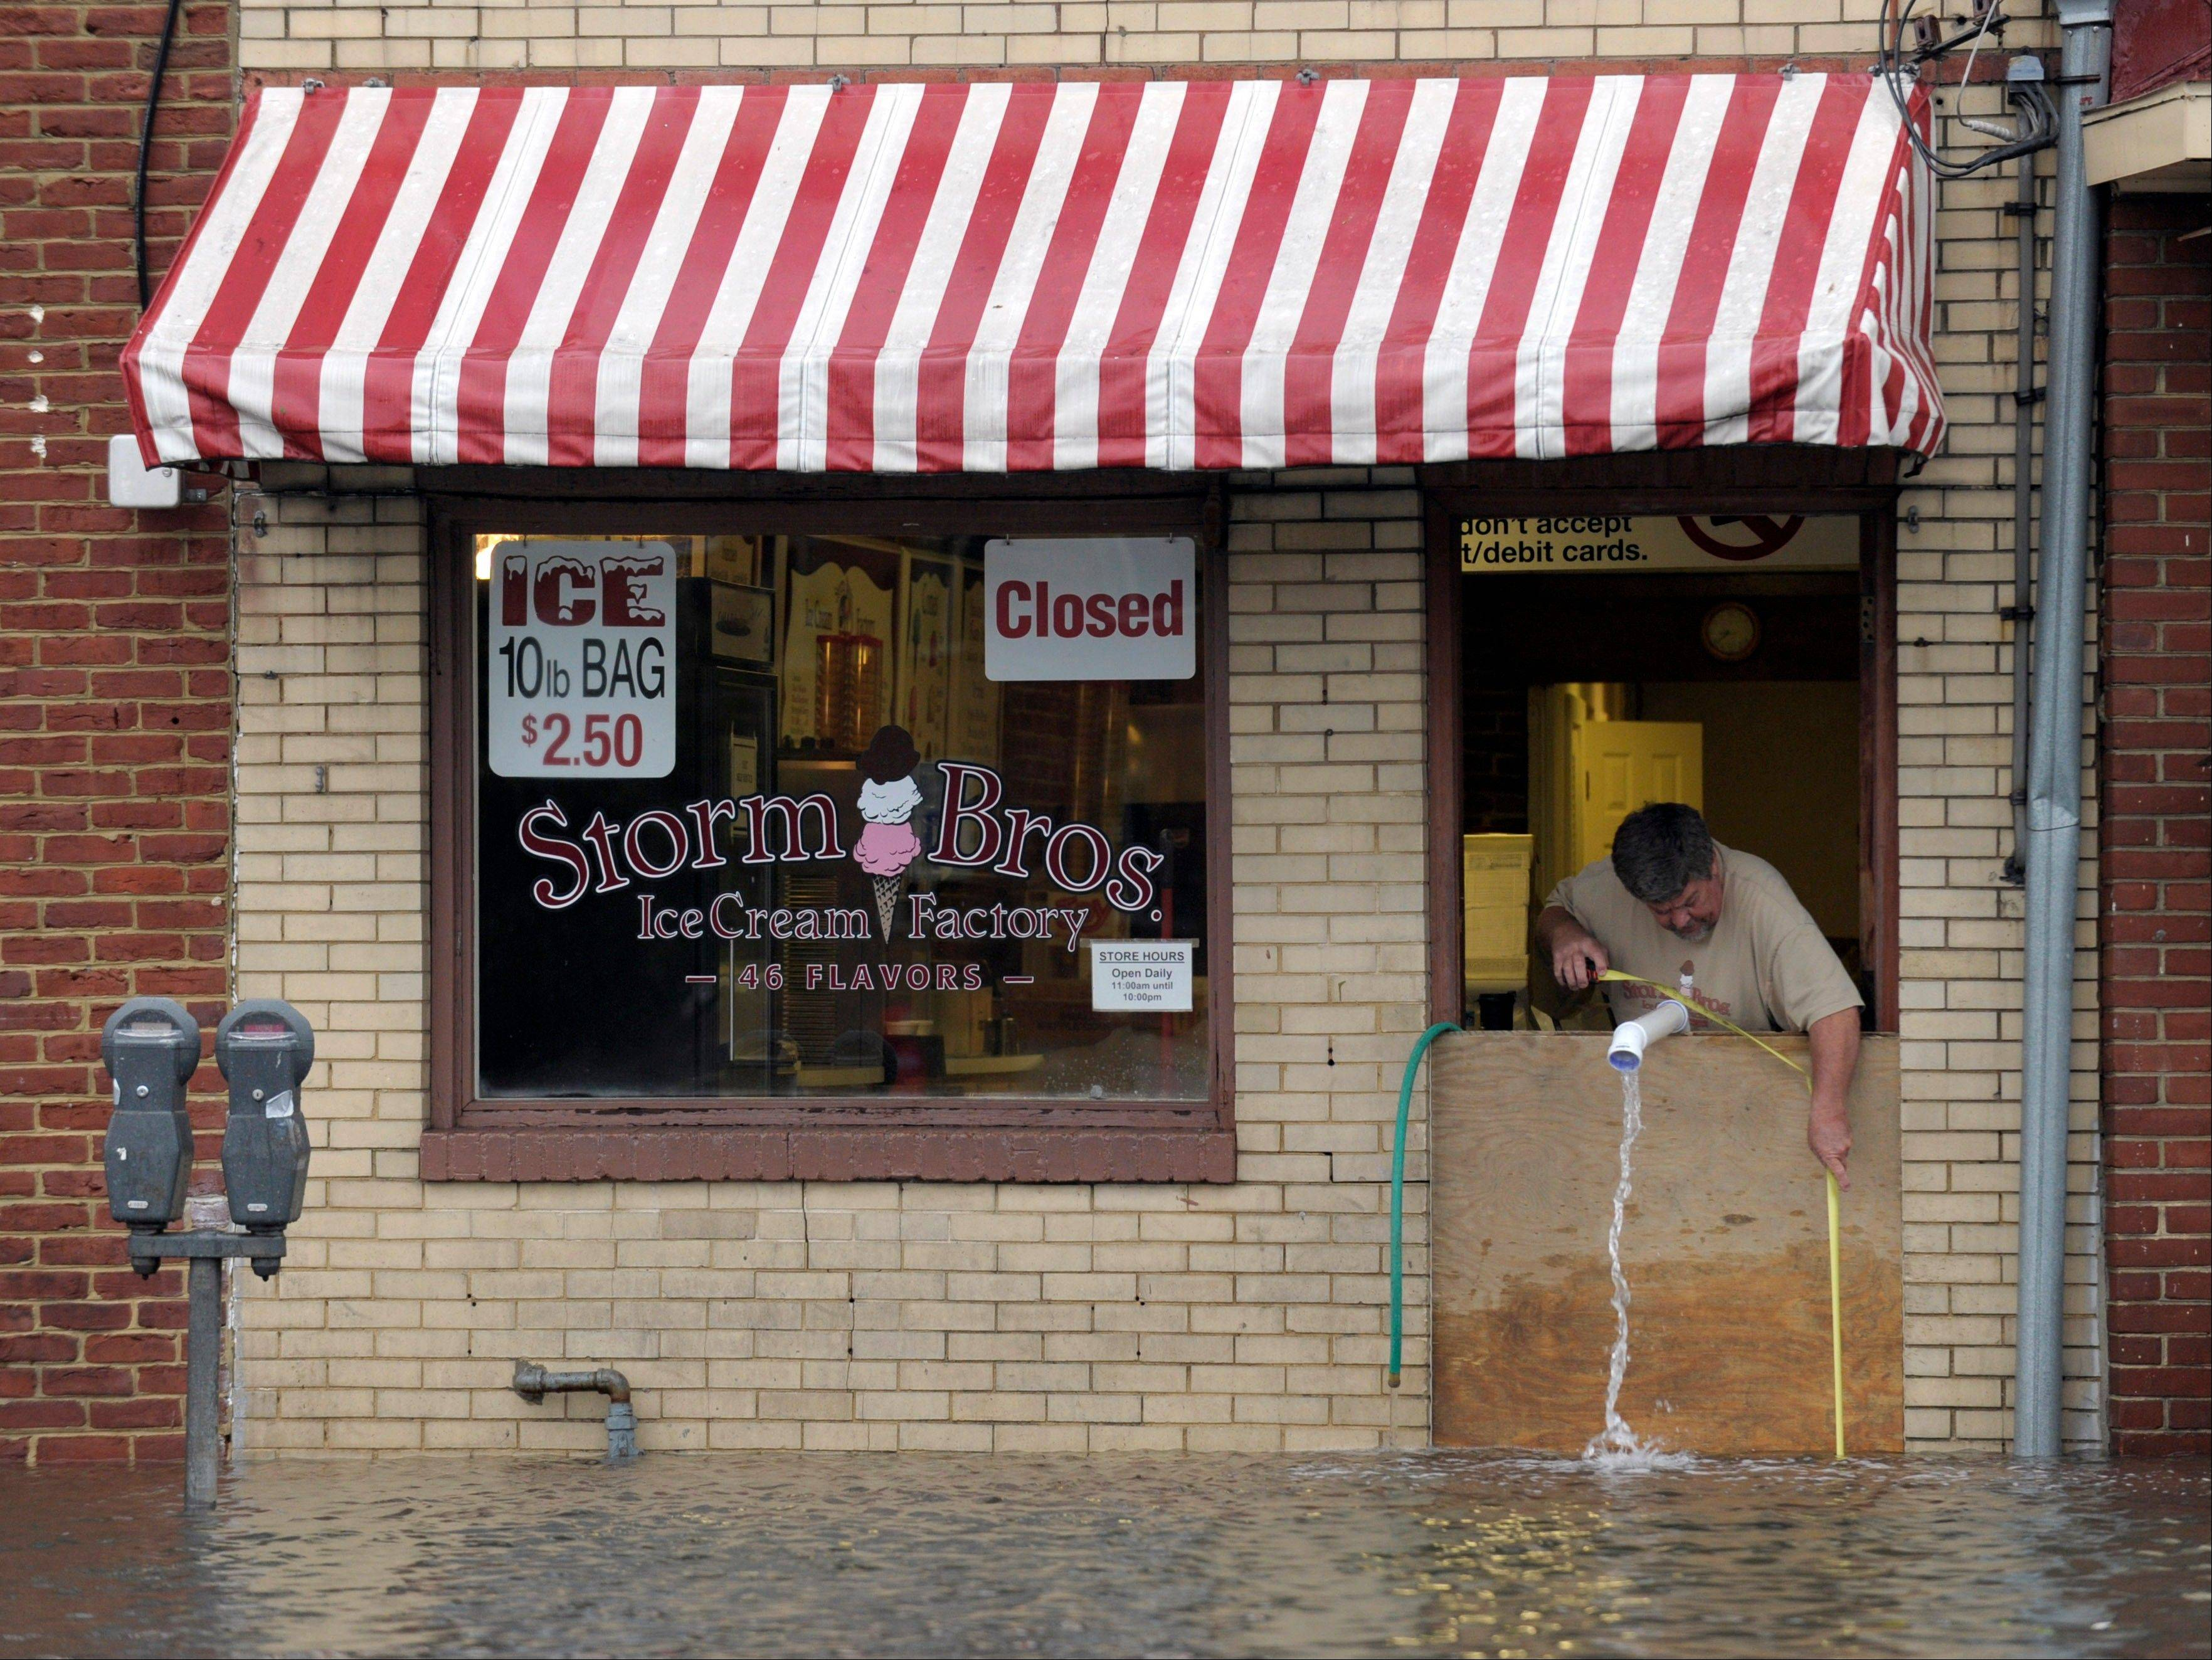 Sveinn Storm, owner of Storm Bros. Ice Cream Factory measures the floodwaters outside his store in Annapolis, Md., Tuesday, Oct. 30, 2012, in the aftermath of Superstorm Sandy that passed through the East Coast.